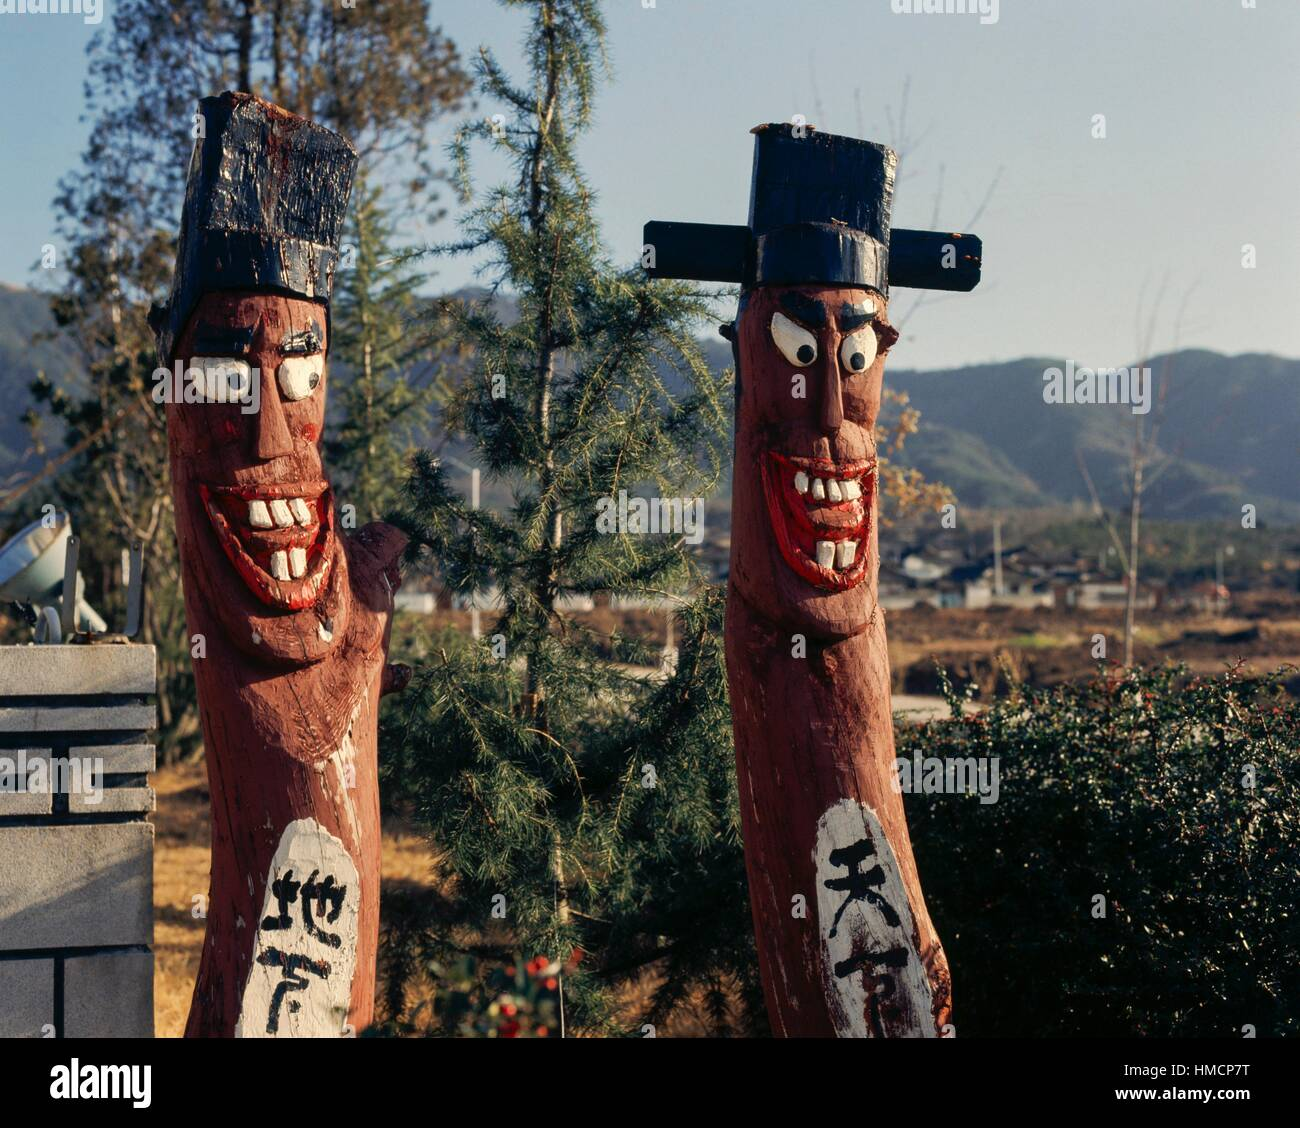 Carved wooden totems with painted faces, South Korea. - Stock Image